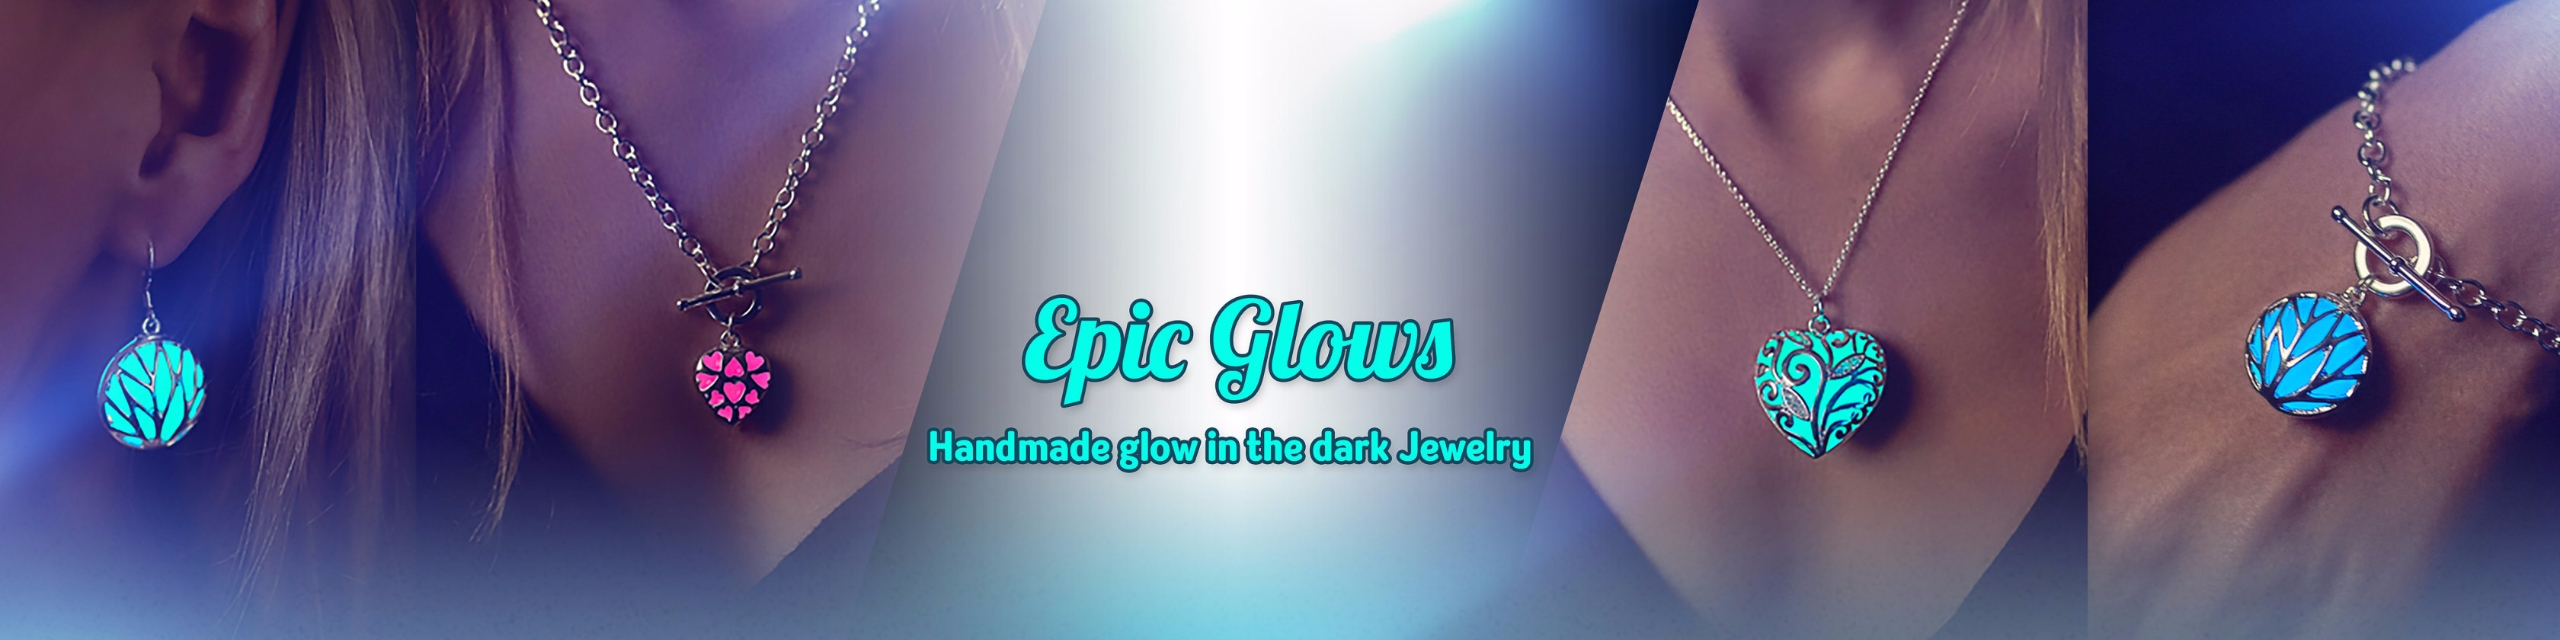 Epic Glows (@epicglows) Cover Image